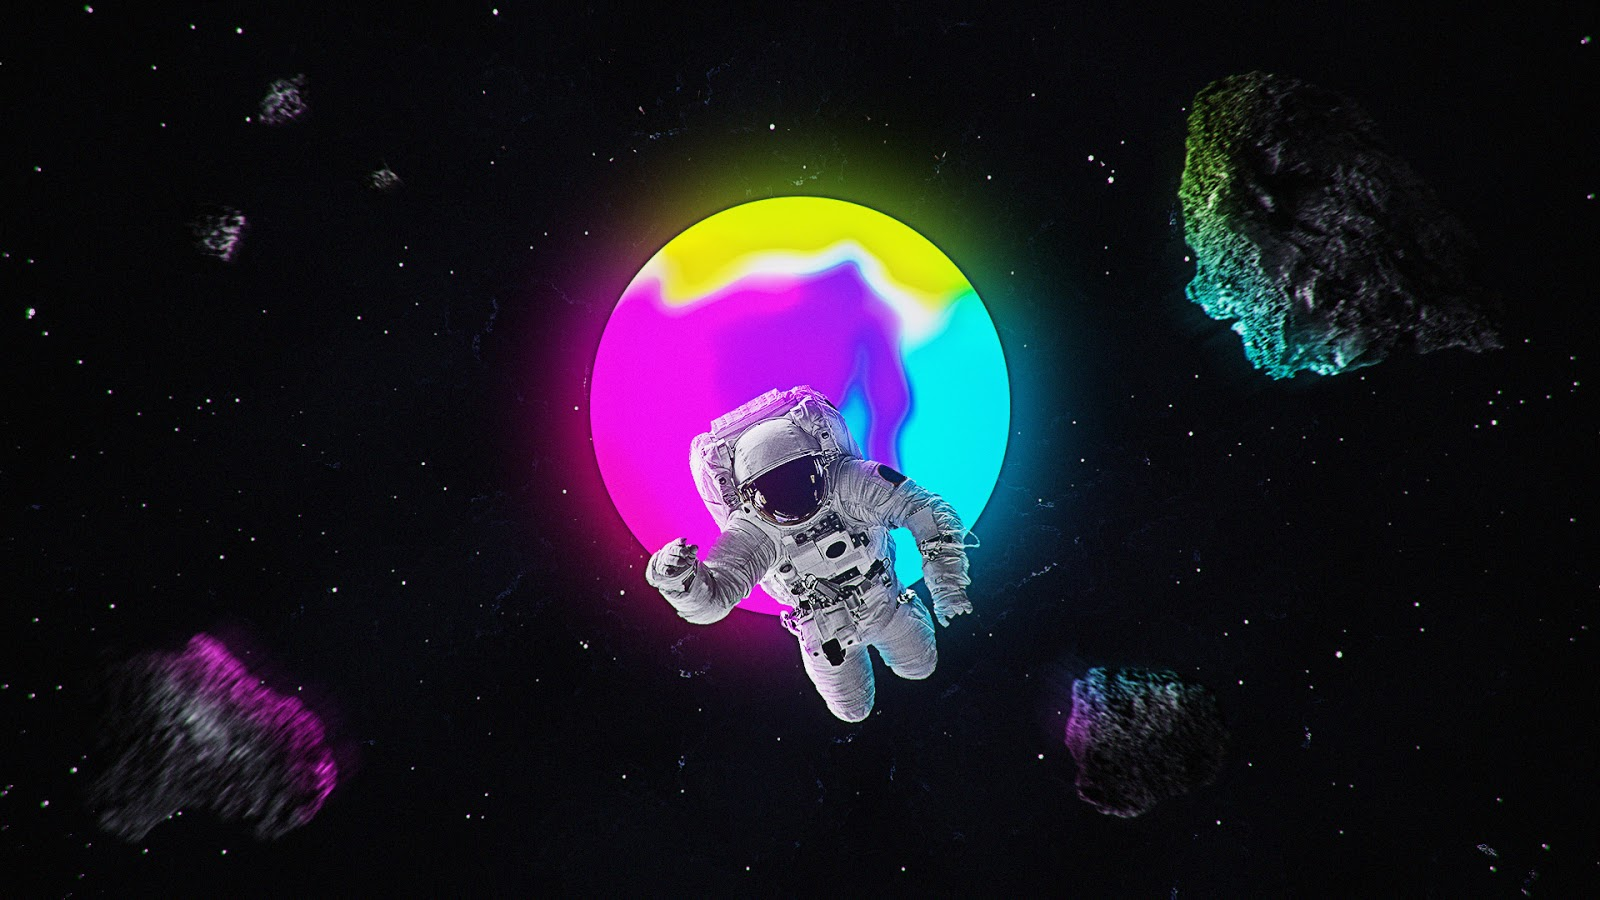 Astronaut, Artworks, HD, Space